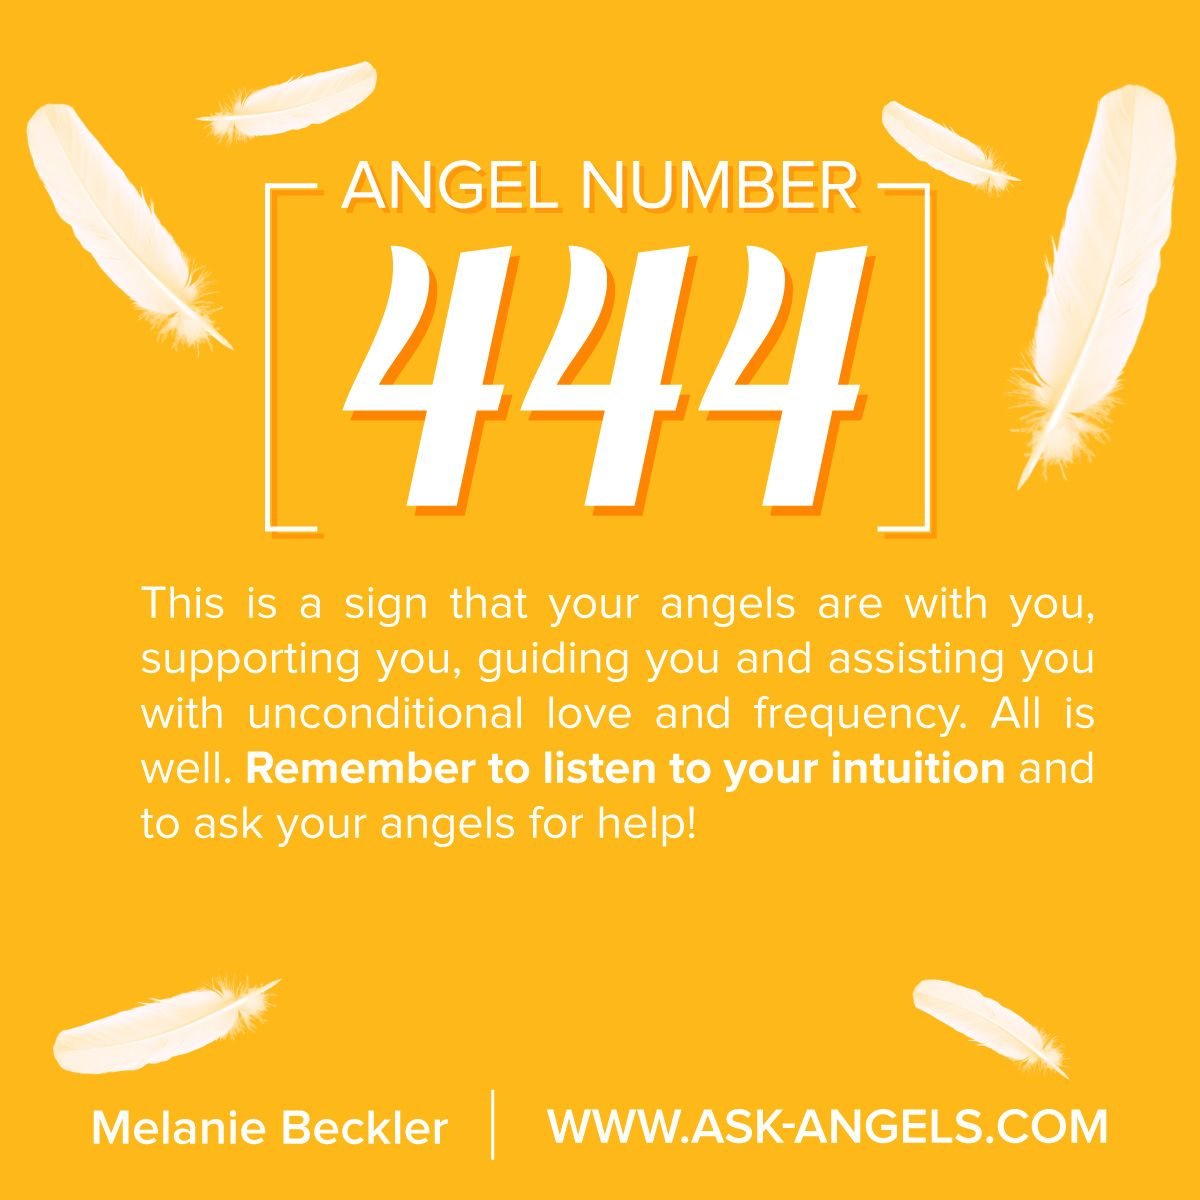 Meaning of the number 22 in the - Angel Number 444 What S The Meaning